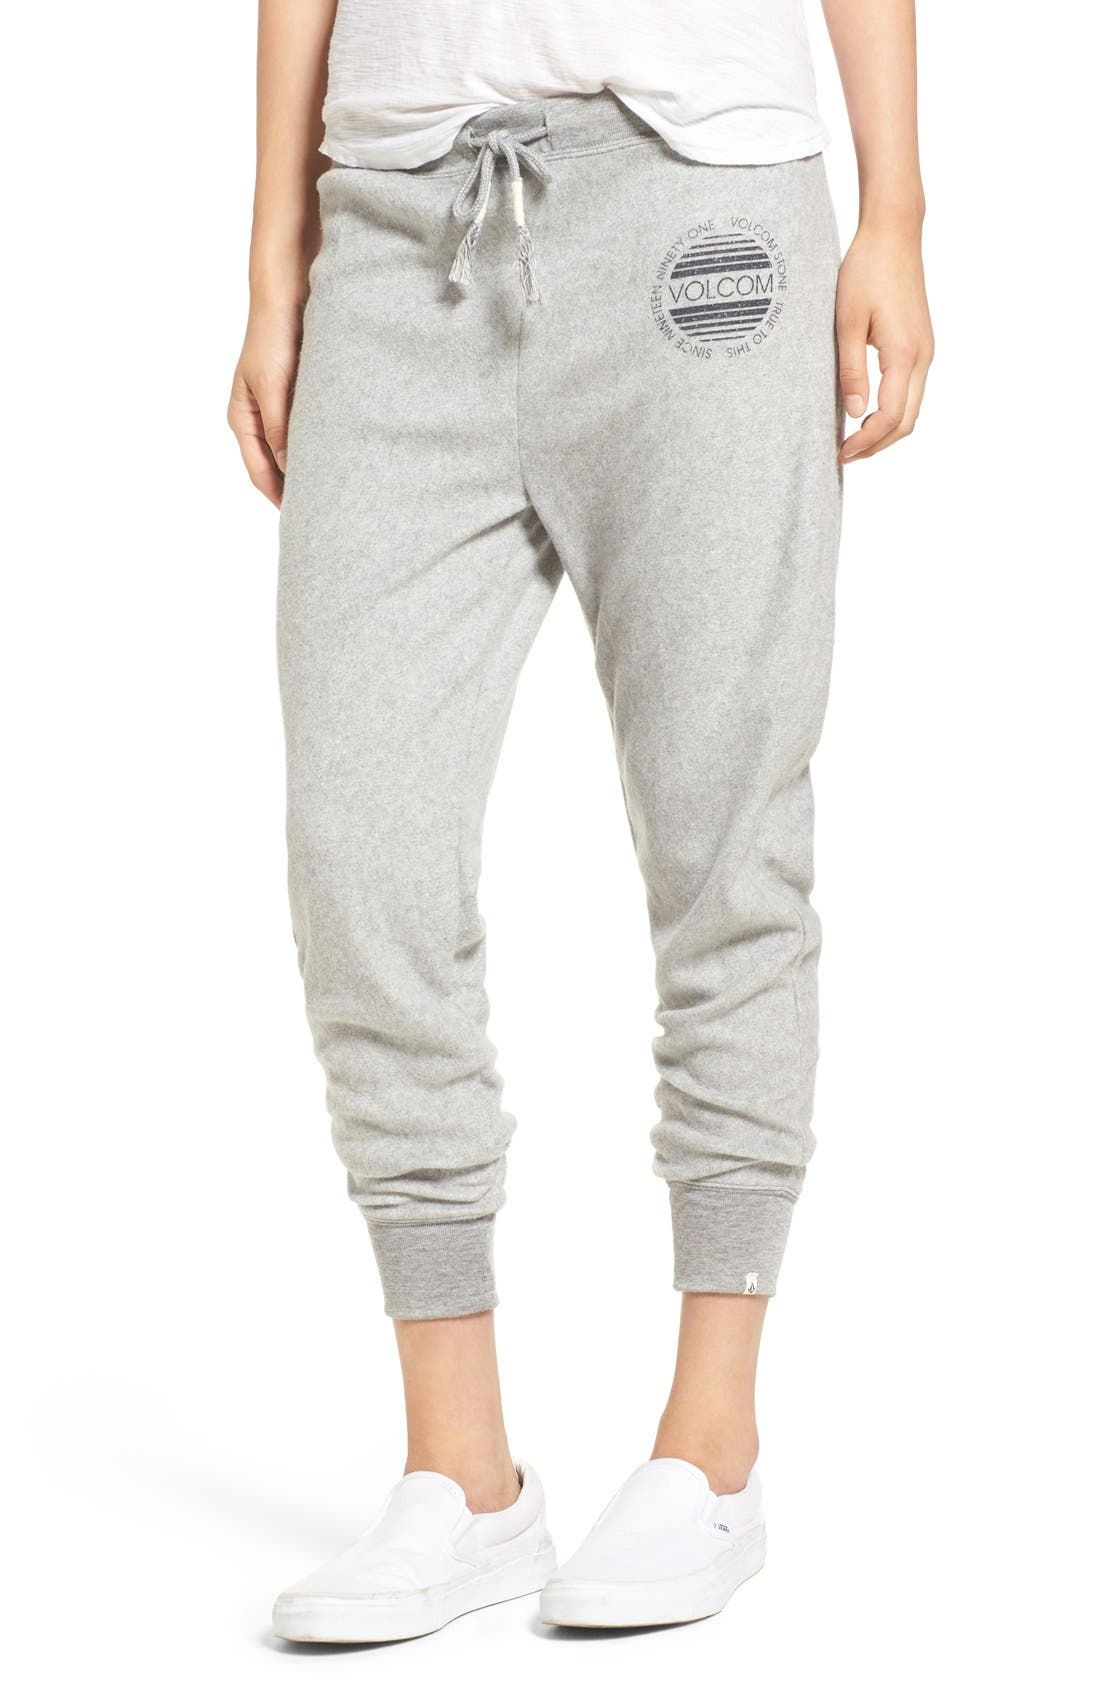 Main Image - Volcom 'Lived In' Drawstring Fleece Jogger Pants